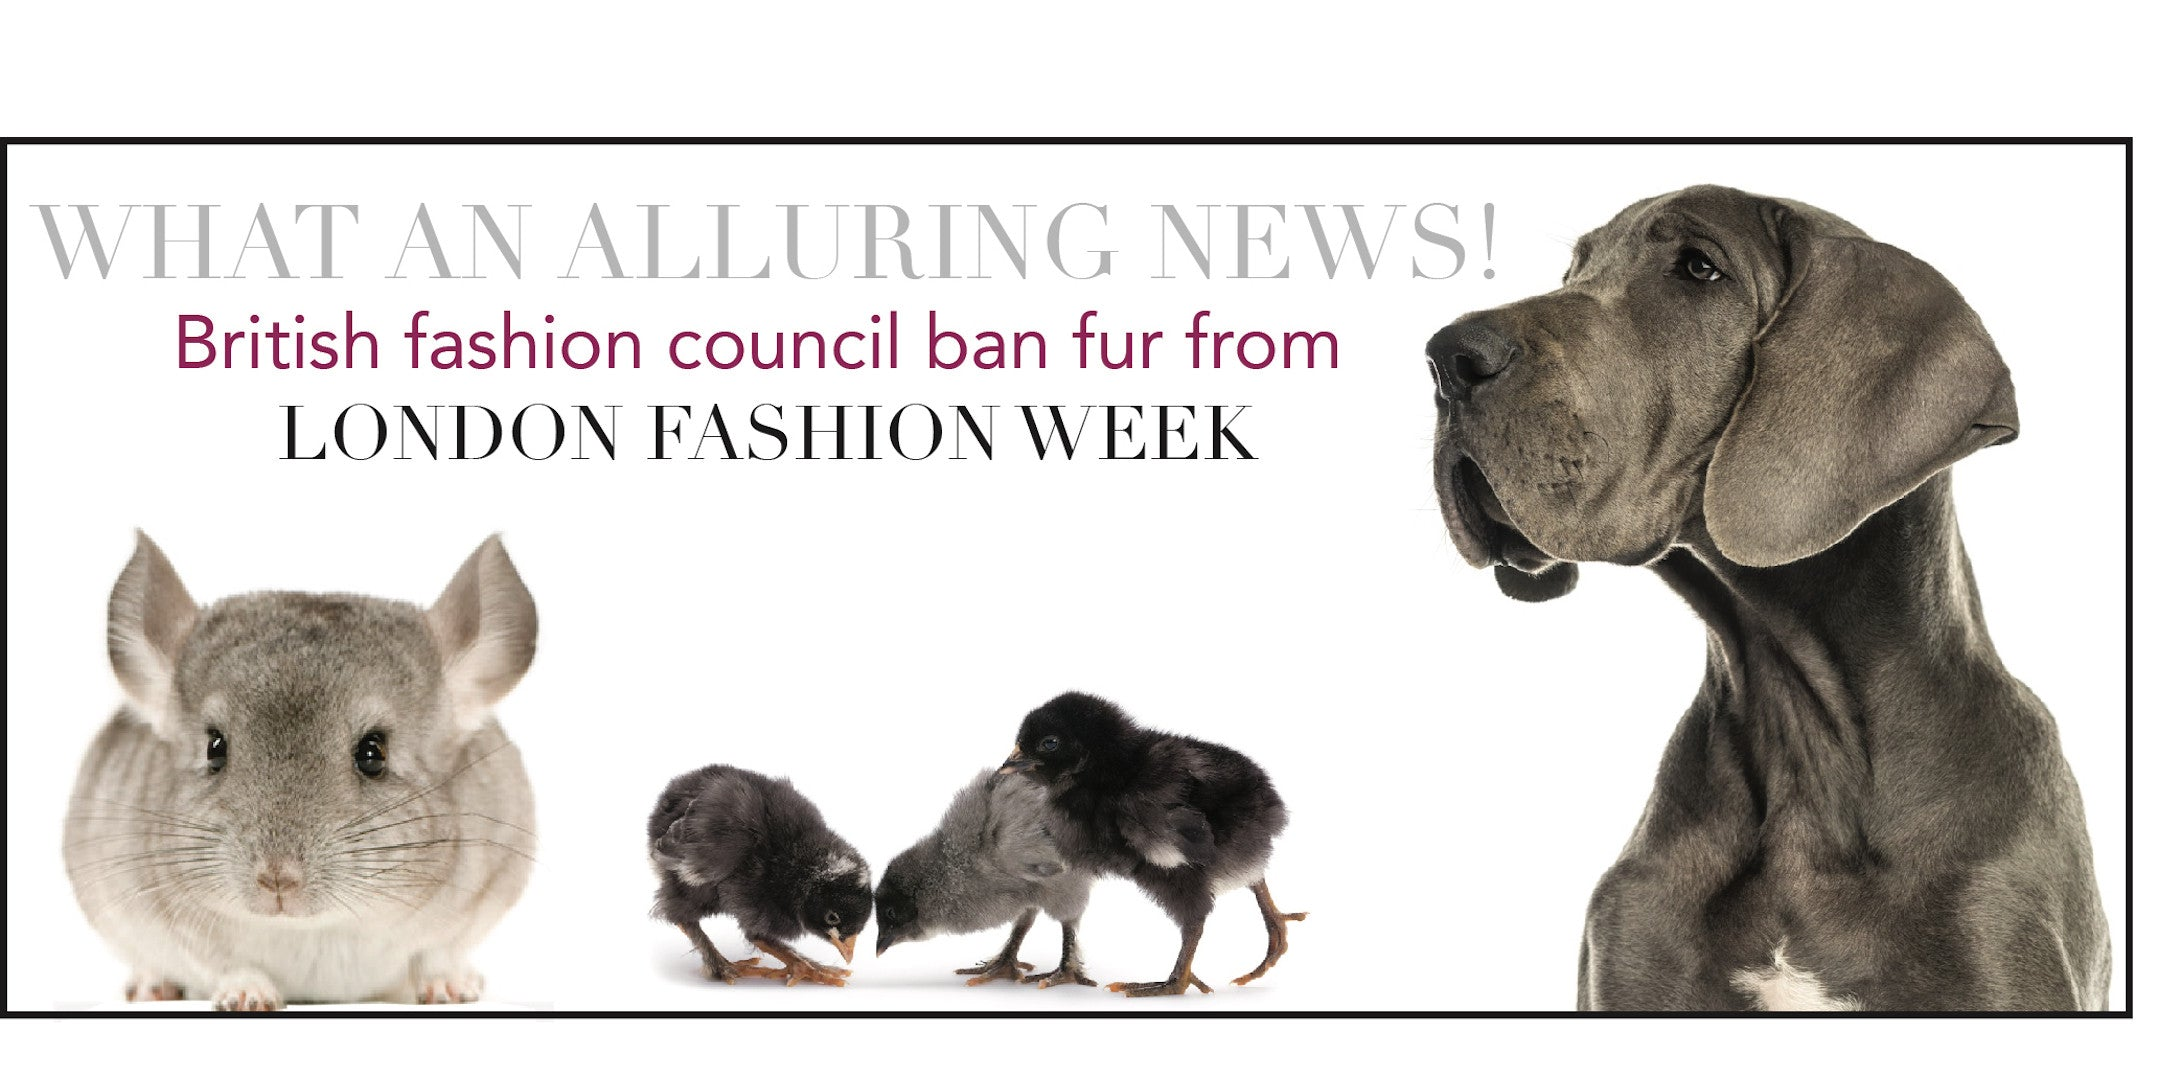 FUR IS OUT OF FASHION